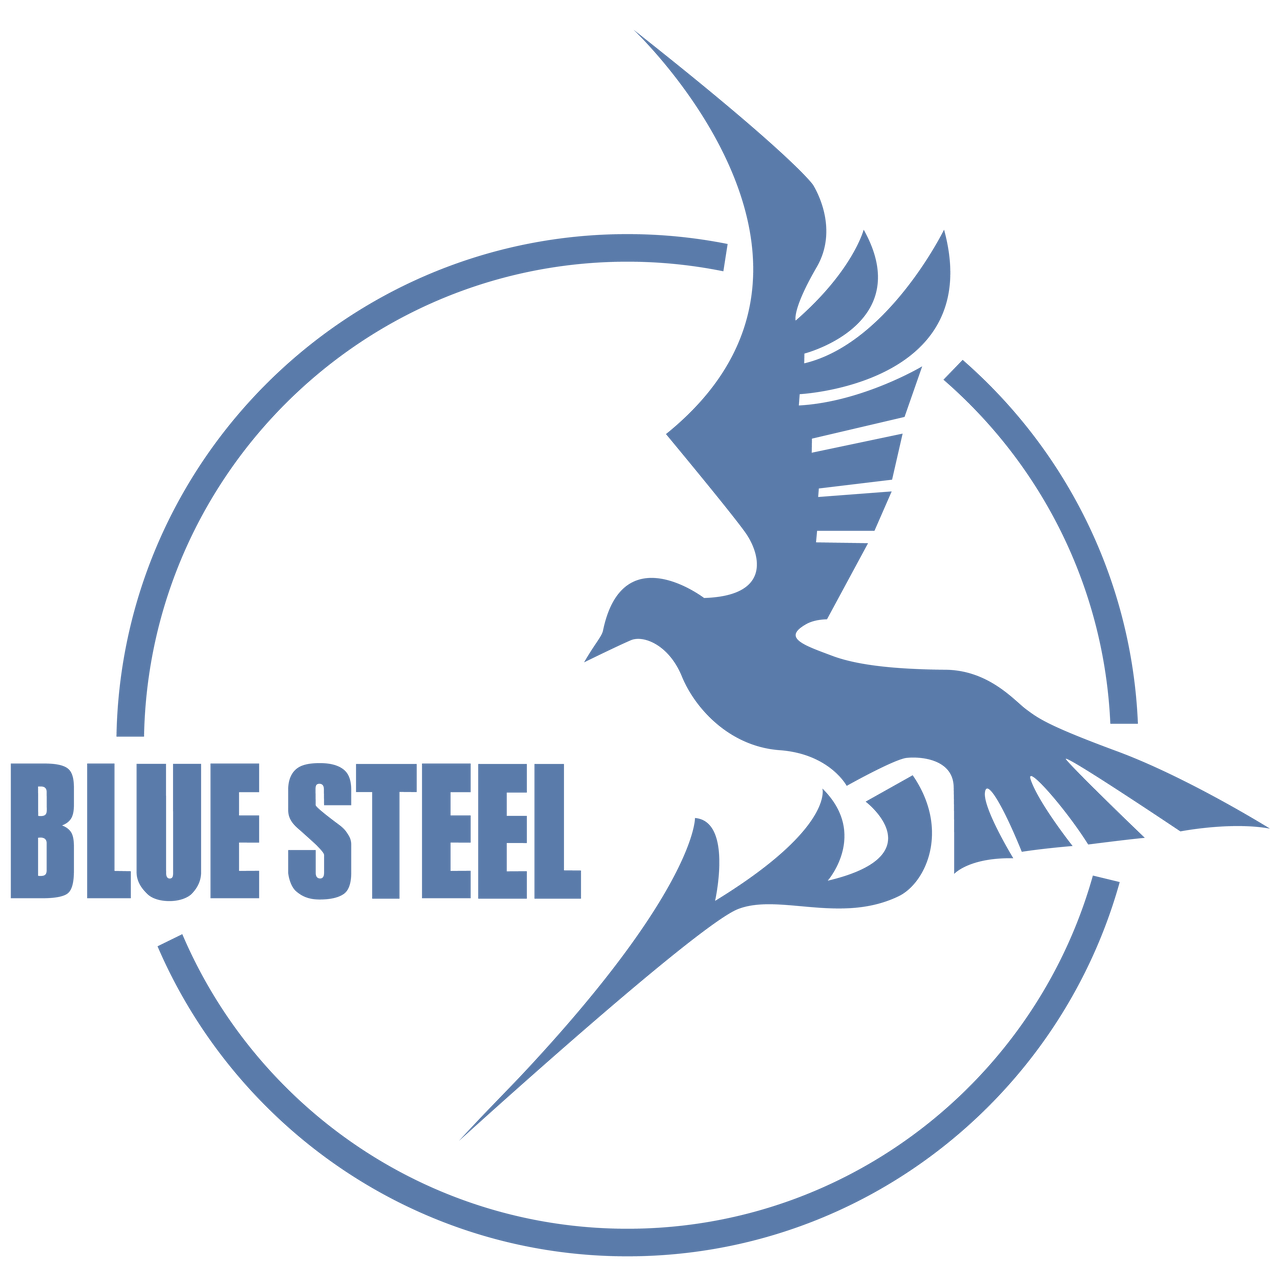 Arpeggio of Blue Steel logo vector by tobuei on DeviantArt